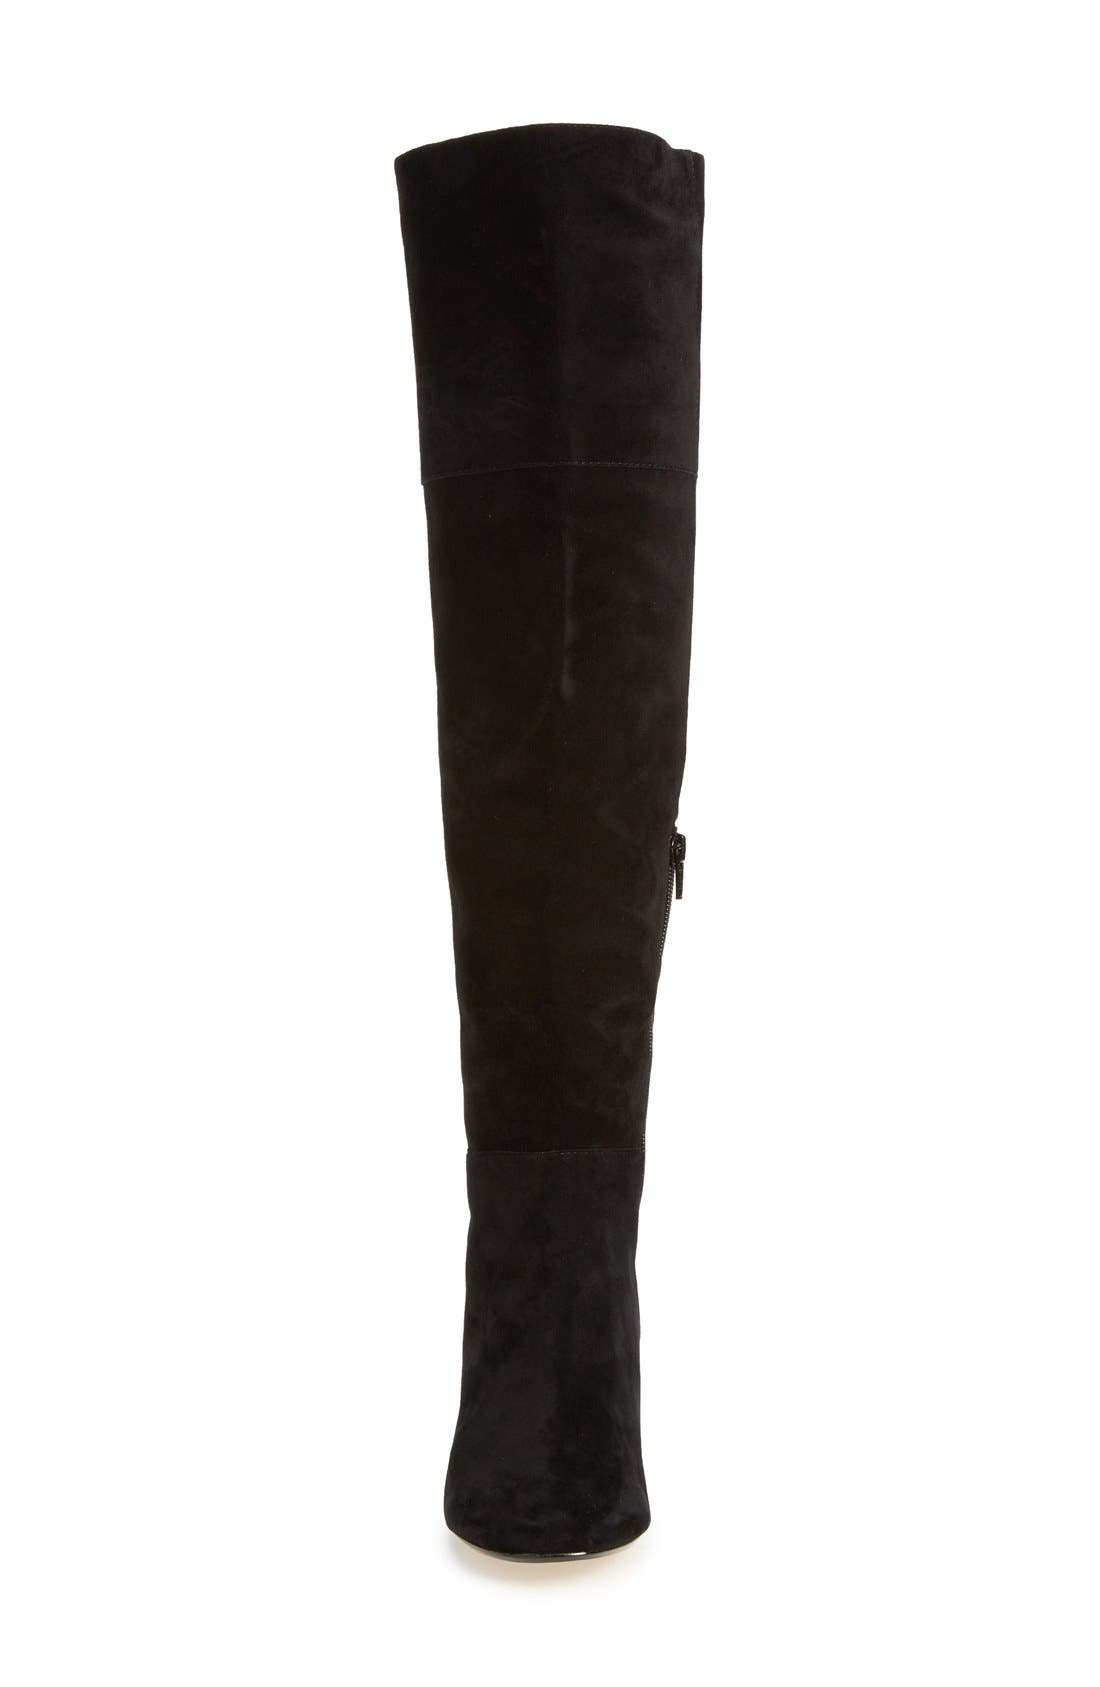 Alternate Image 3  - Dune London 'Sanford' Tall Boot (Women)